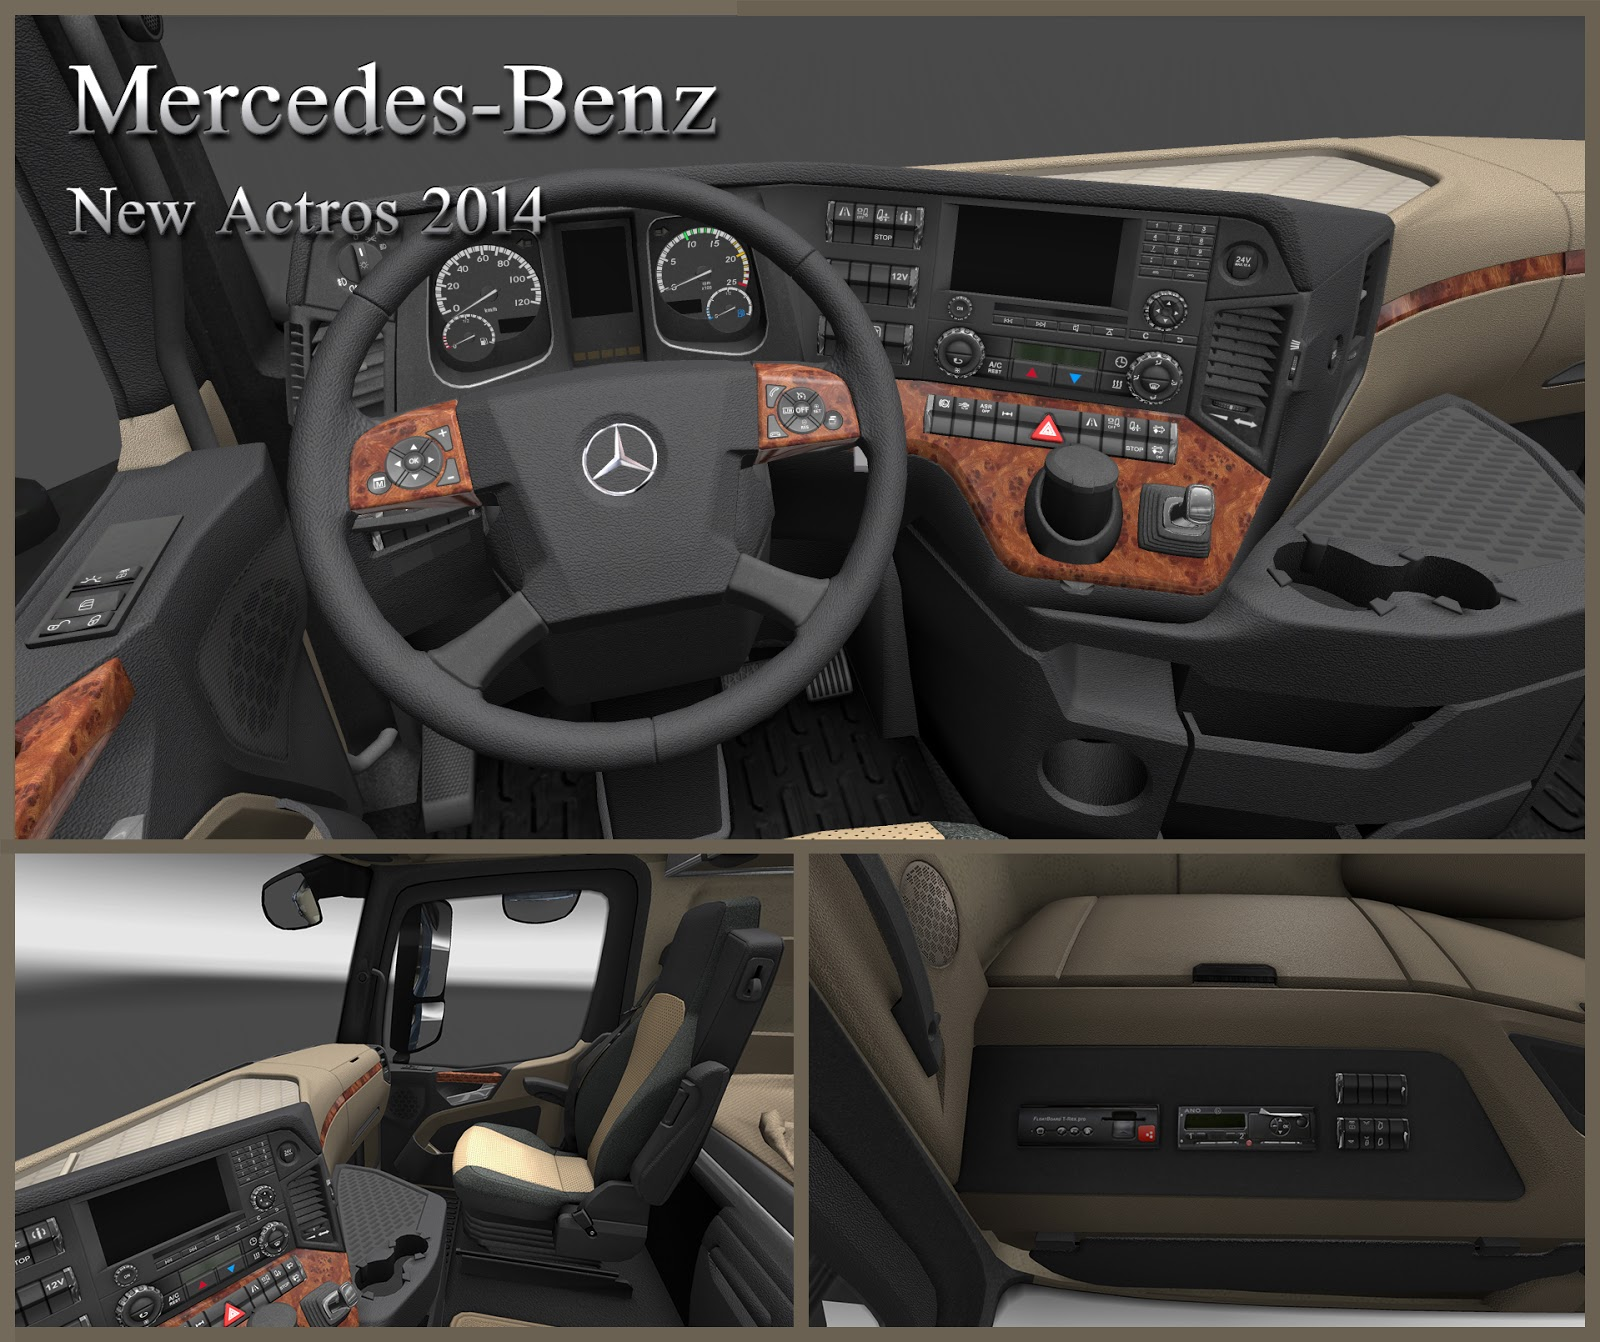 MB-New-Actros-2014-Interior2.jpg